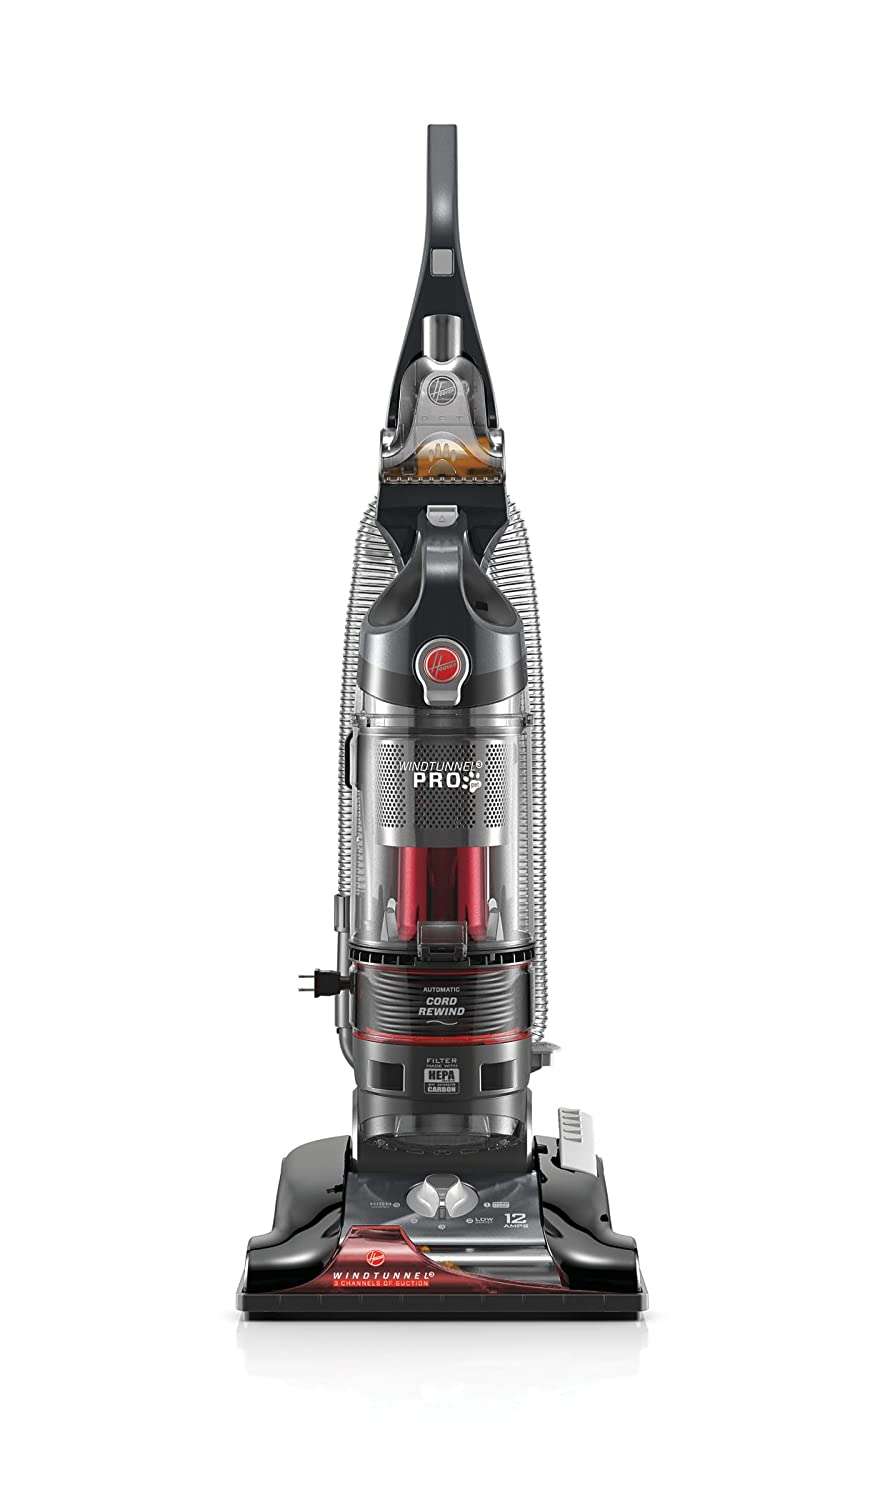 hoover windtunnel 3 pro pet bagless upright vacuum cleaner uh70935